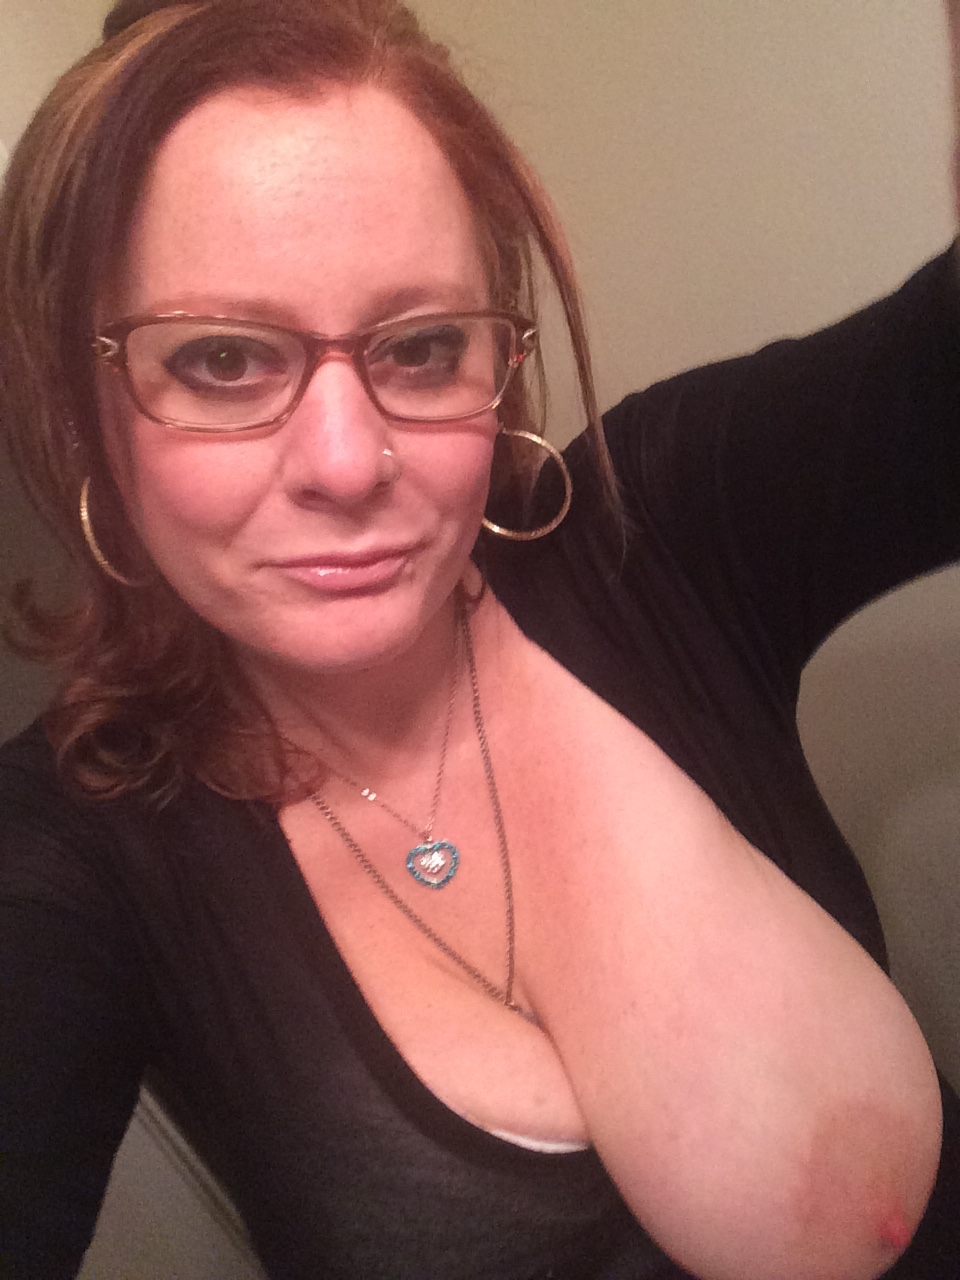 kinky-slut-mom-with-big-tits